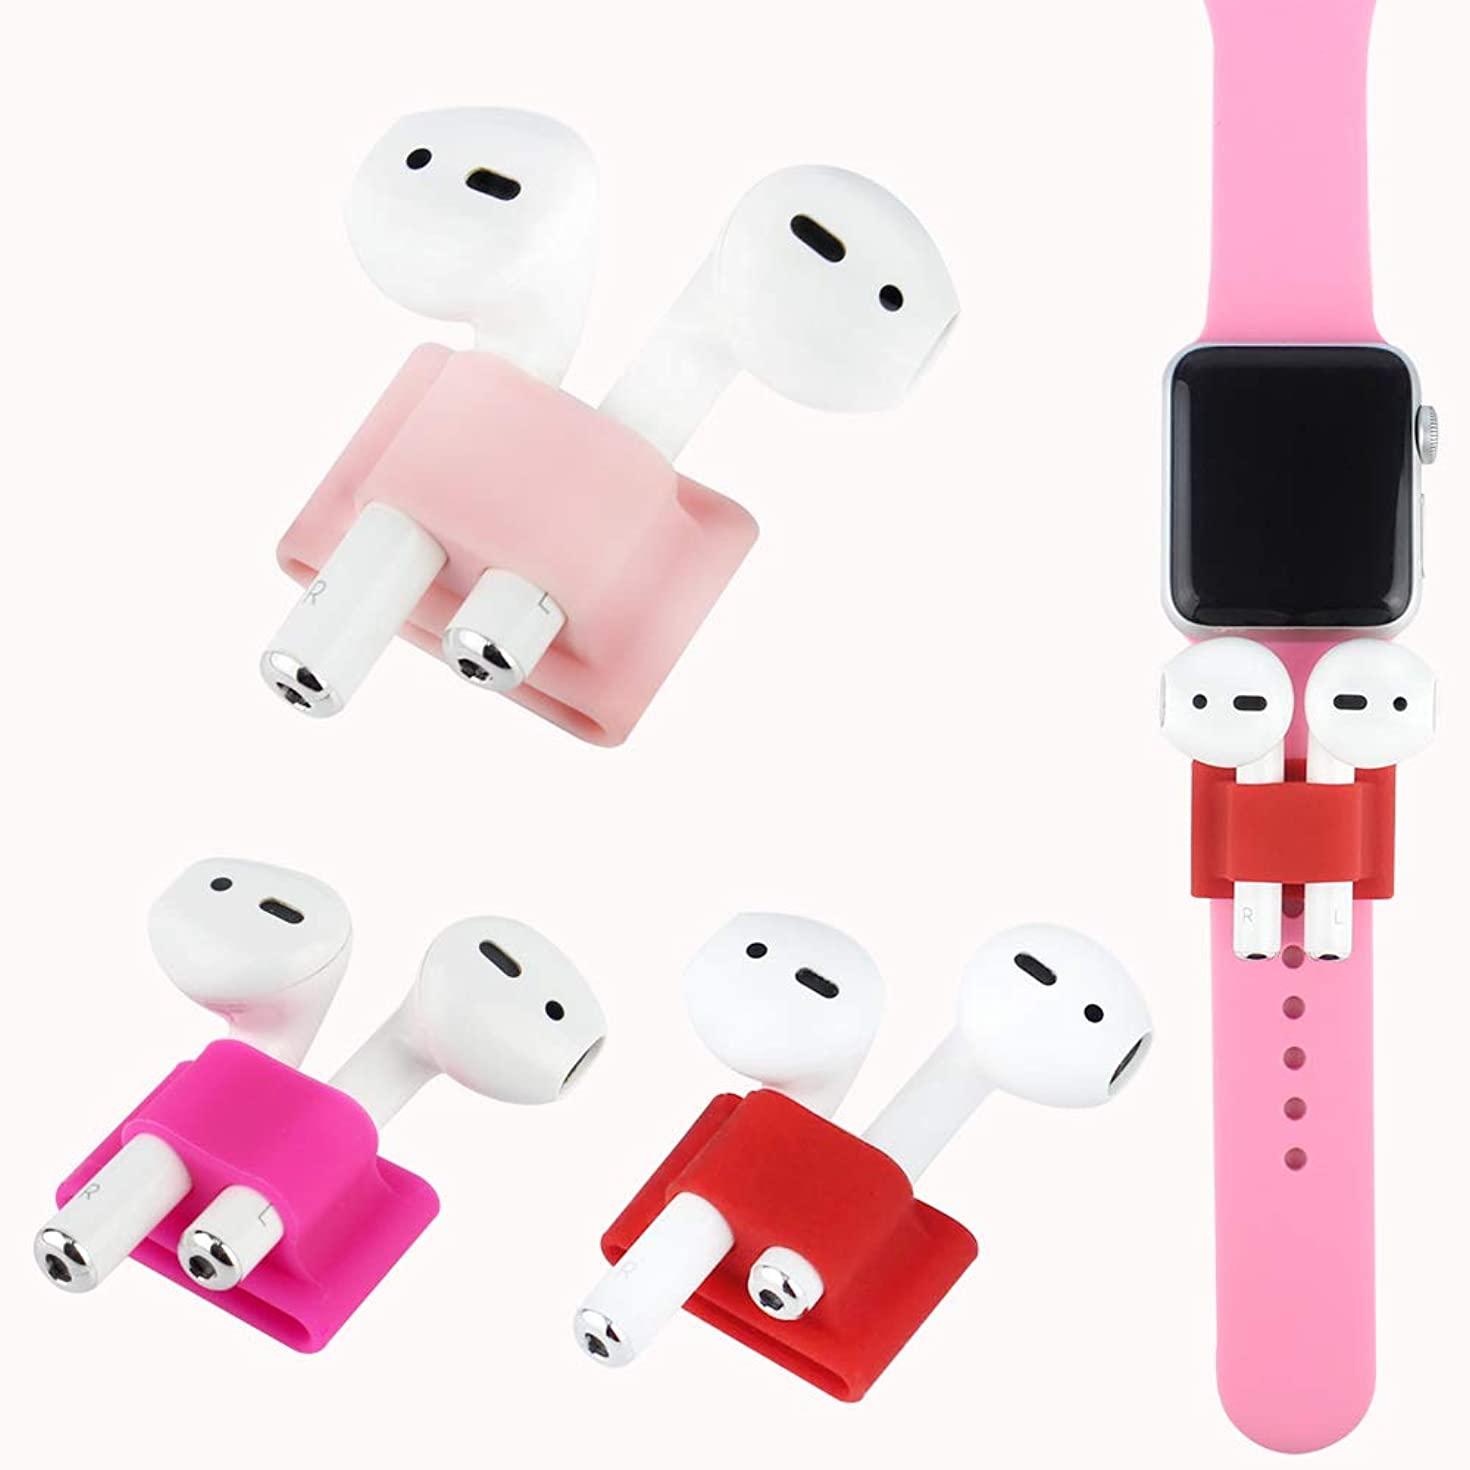 AirPods Band Holder [Airpods Watch Band Holder] [3 Pack] Silicone [Pink][Rose Red][Red] Stylish Minimalist Design, Perfectly Fits for Compatible with Apple AirPods